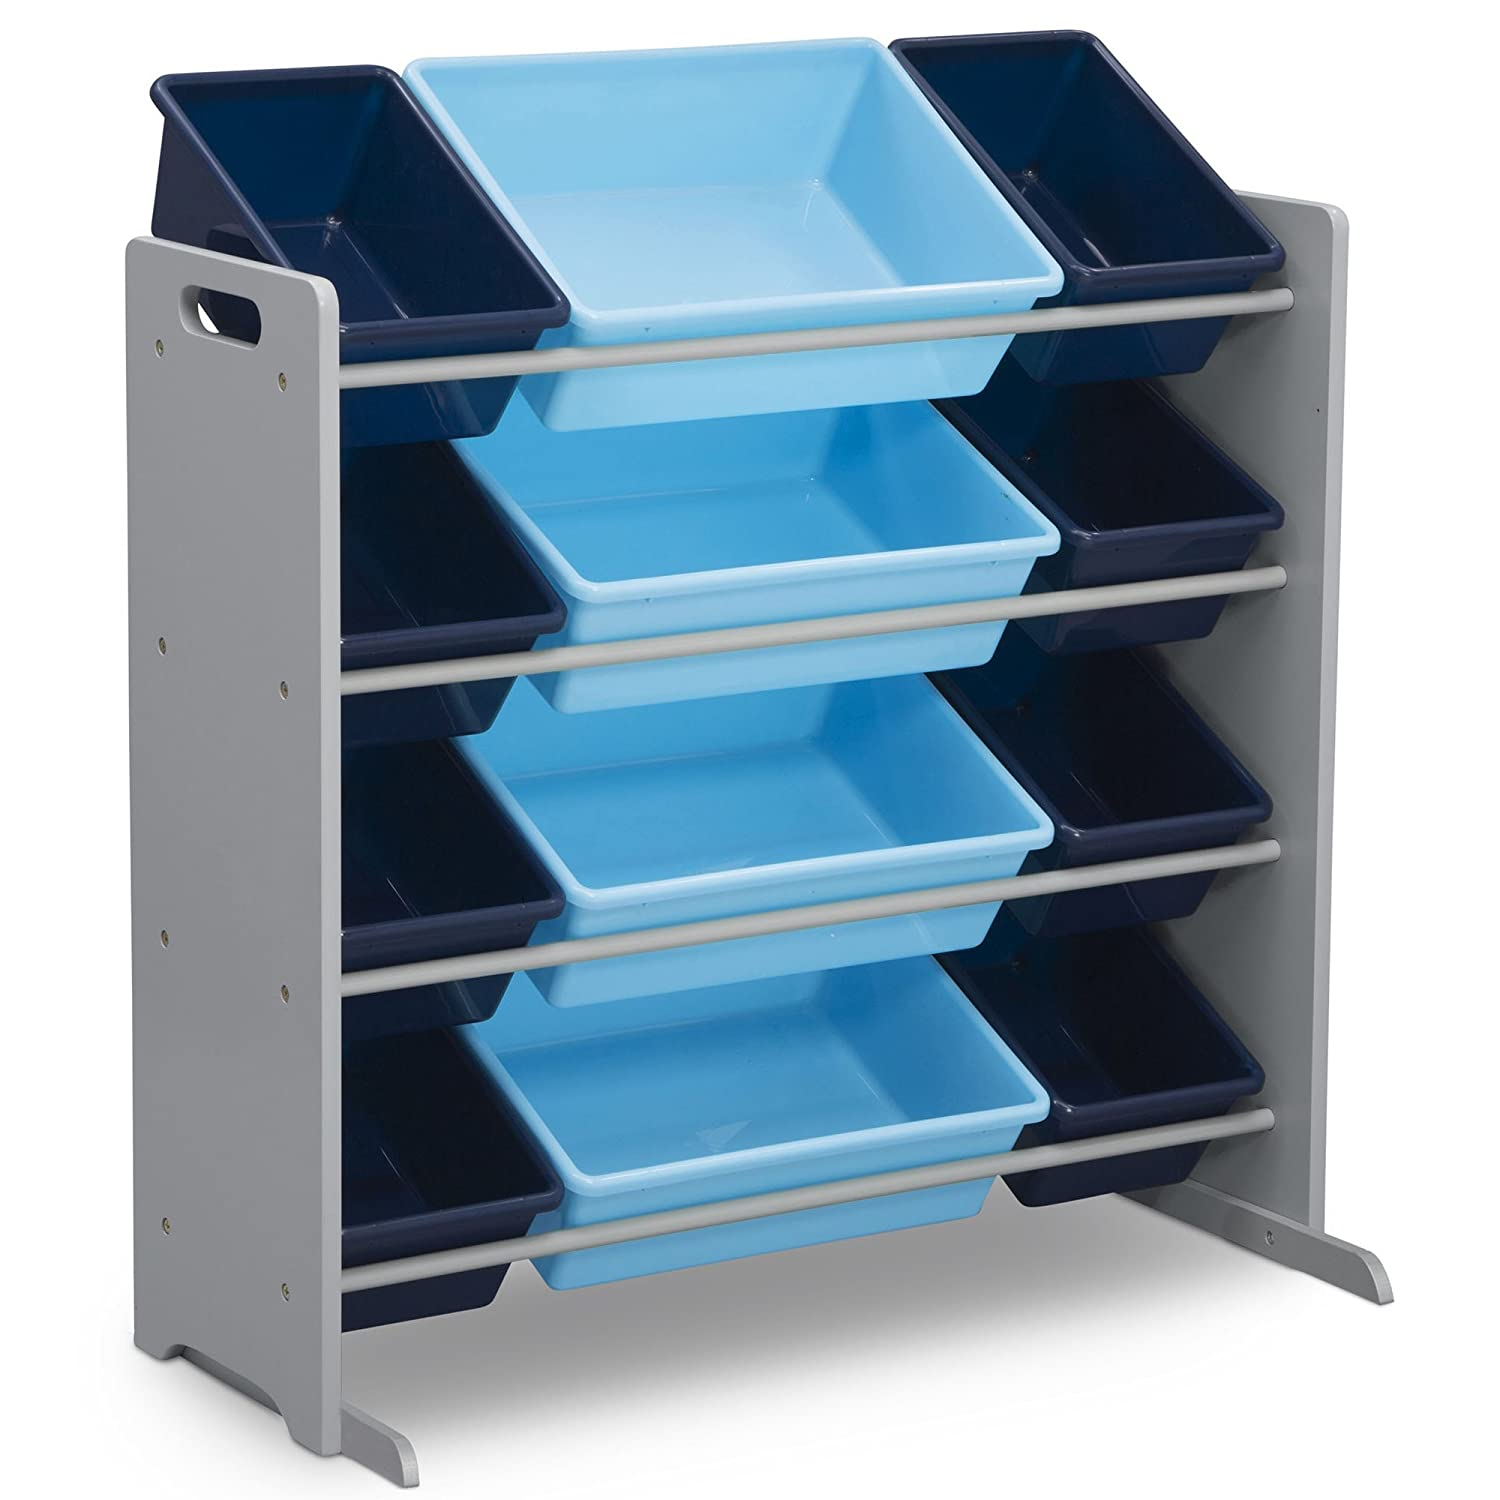 Delta Children Kids Toy Storage Organizer with 12 Plastic Bins, Grey/Blue, Grey/Blue